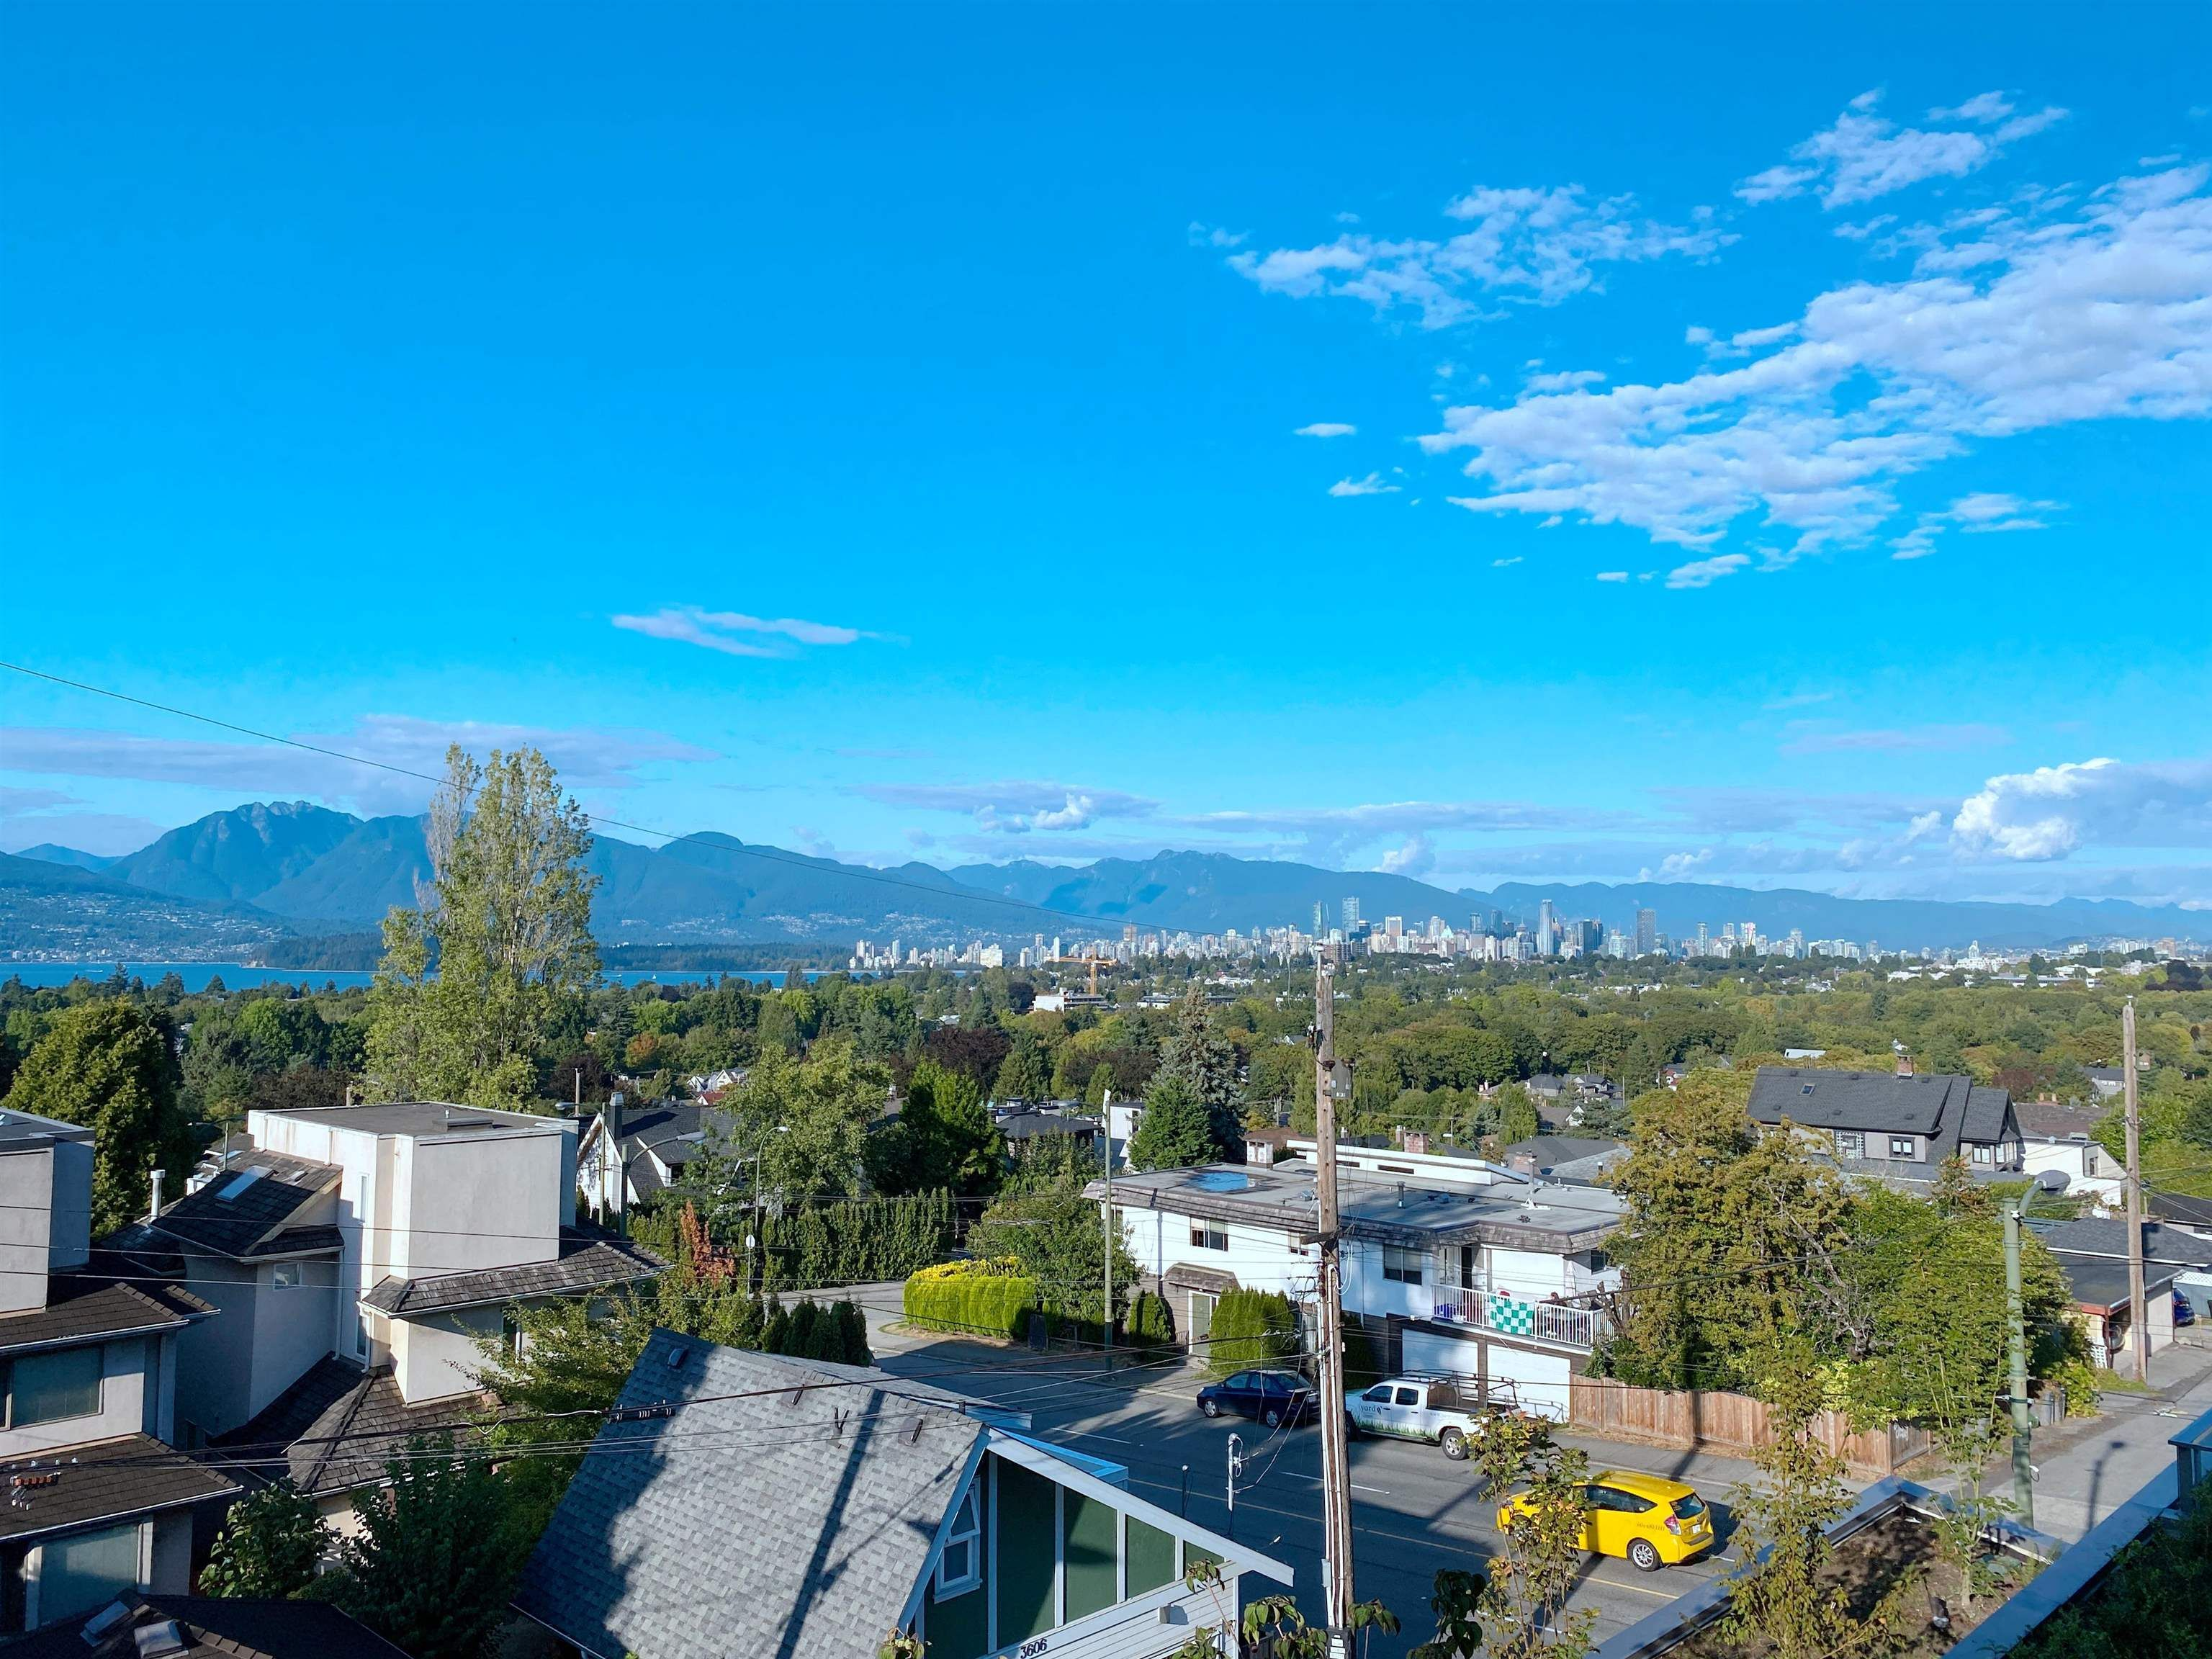 """Main Photo: 304 3639 W 16TH Avenue in Vancouver: Point Grey Condo for sale in """"The Grey"""" (Vancouver West)  : MLS®# R2611859"""